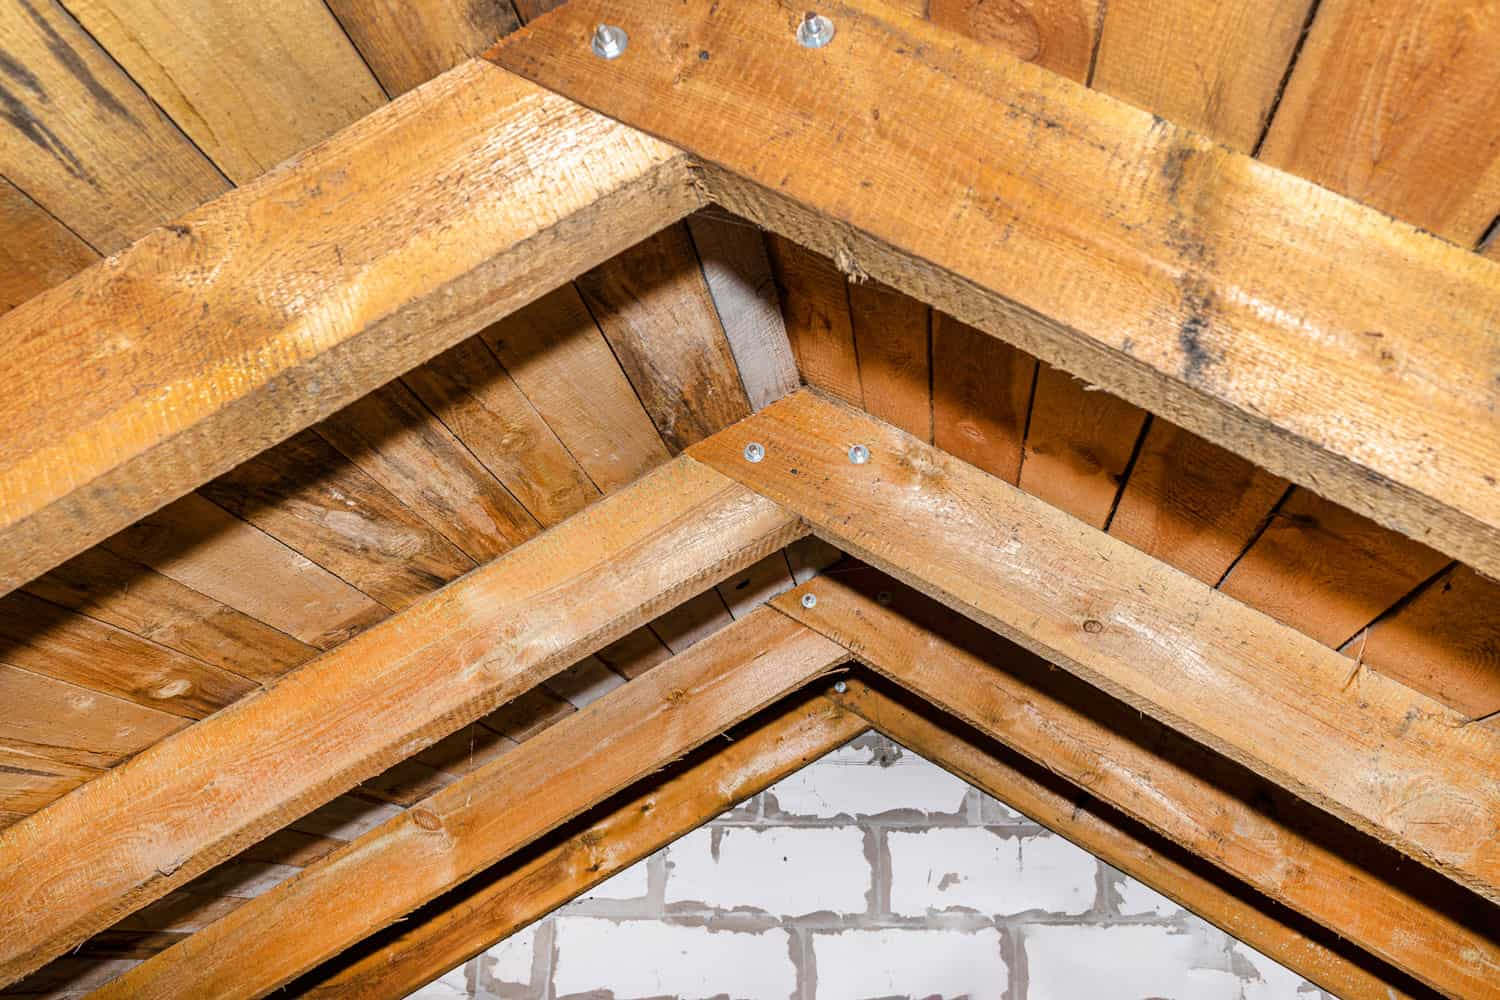 Wooden roof made of rafter-type roof truss, close-up view from the inside